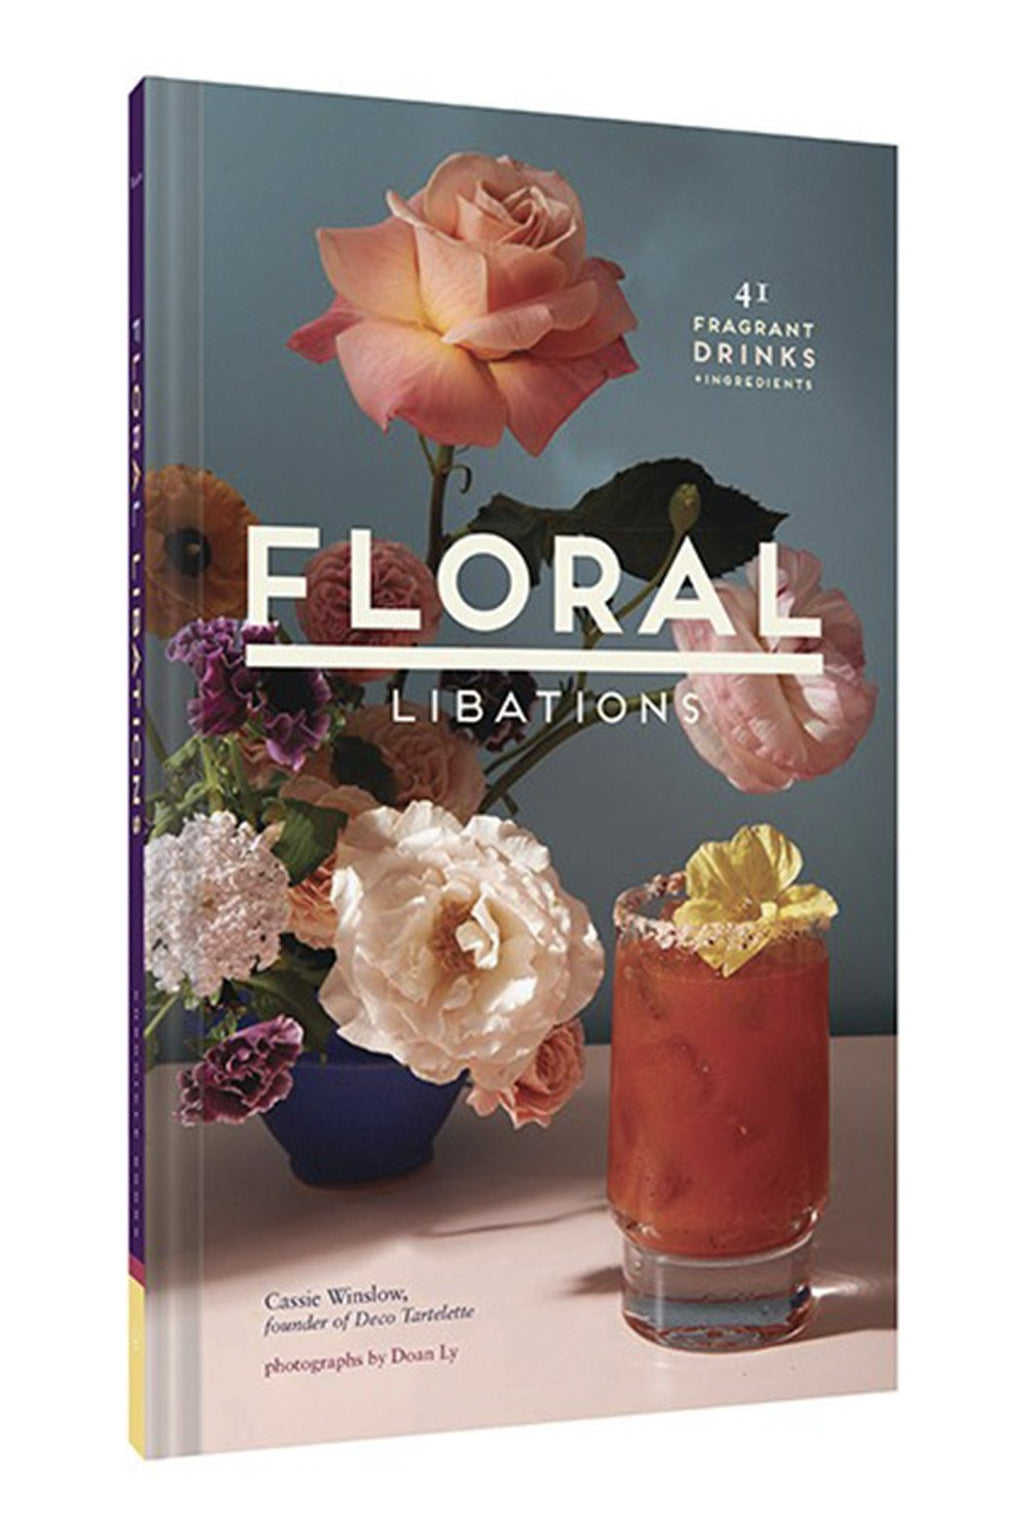 EcoVibe Style - Floral Libations: 41 Fragrant Drinks and Ingredients by Cassie Winslow, Book